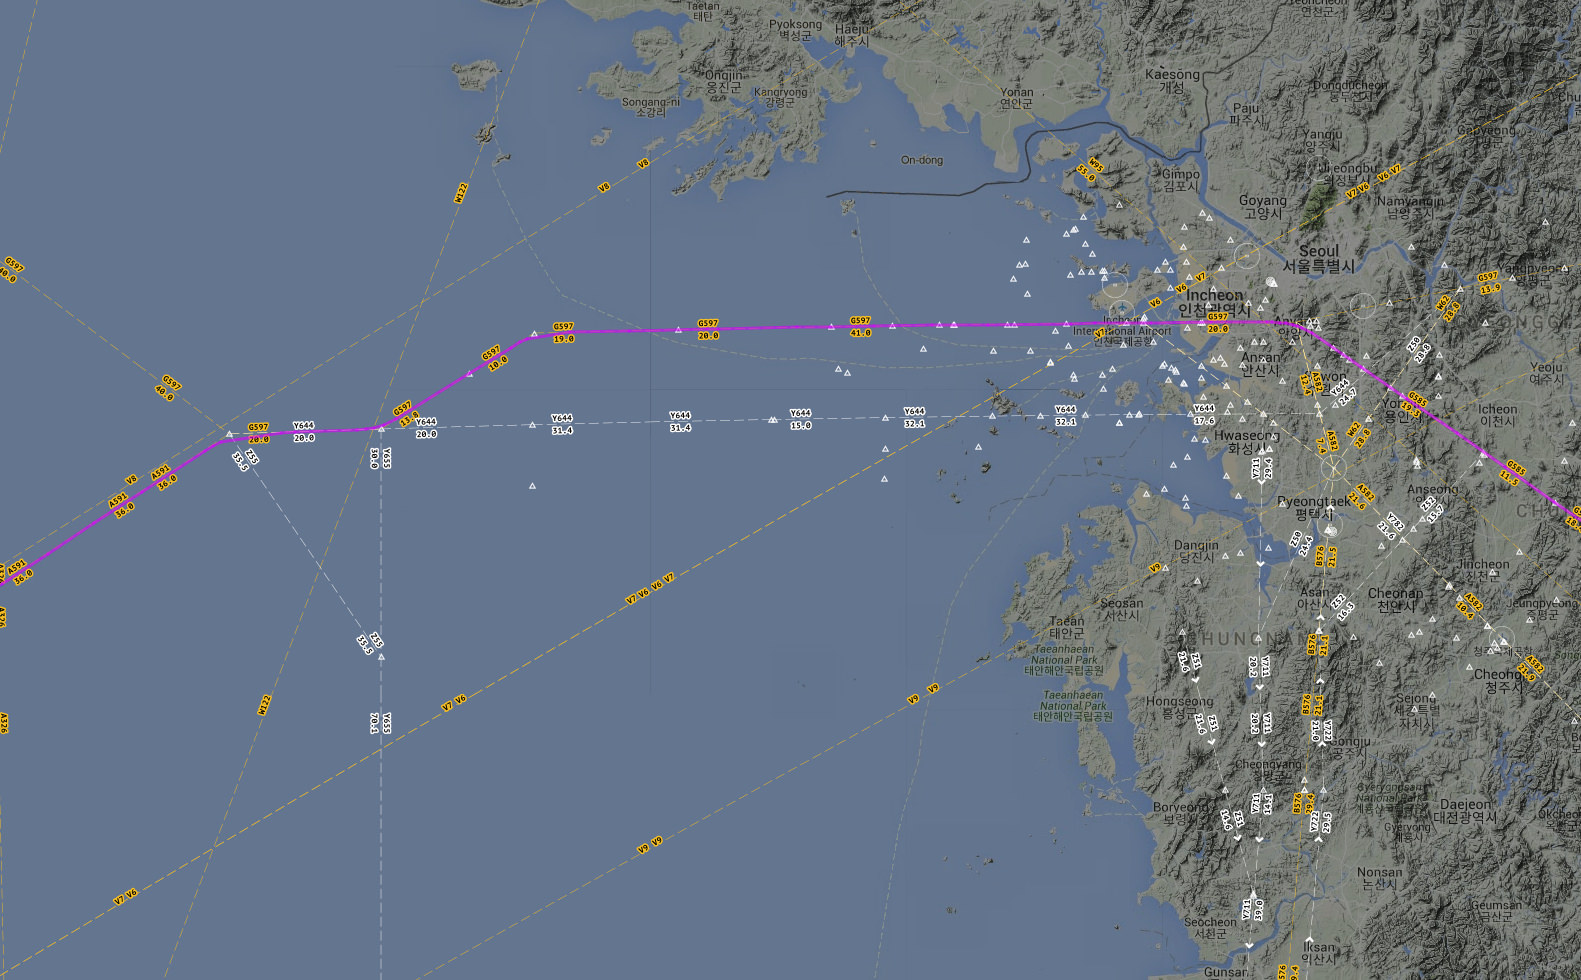 NH8541's flight path near Seoul, with chart overlay